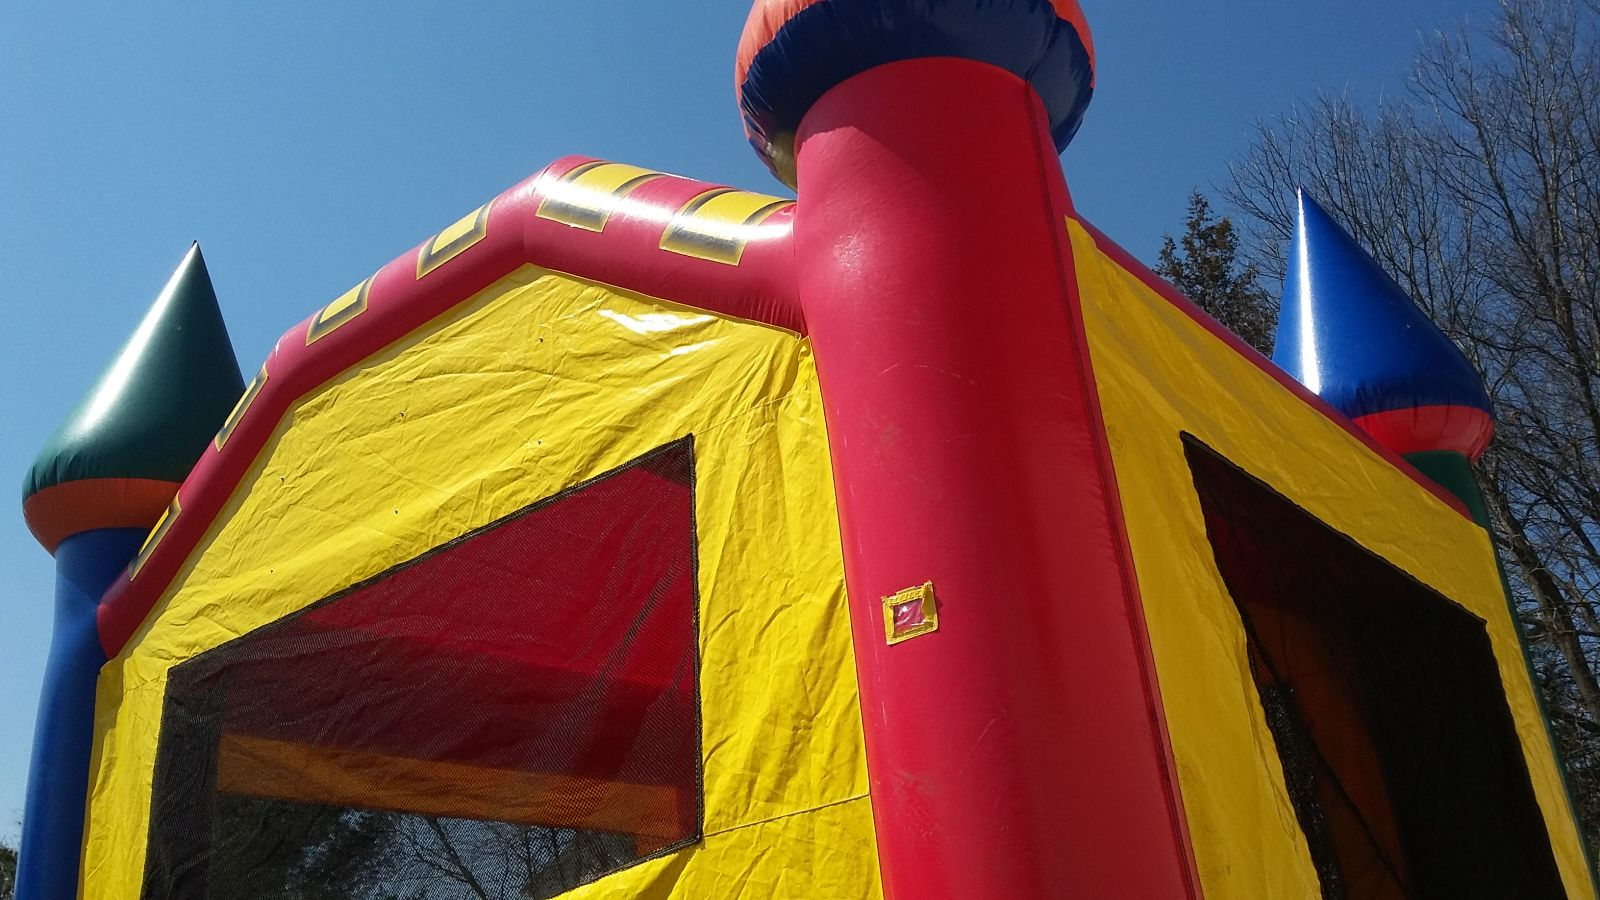 Skyview of Fun-Filled Castle Bounce House